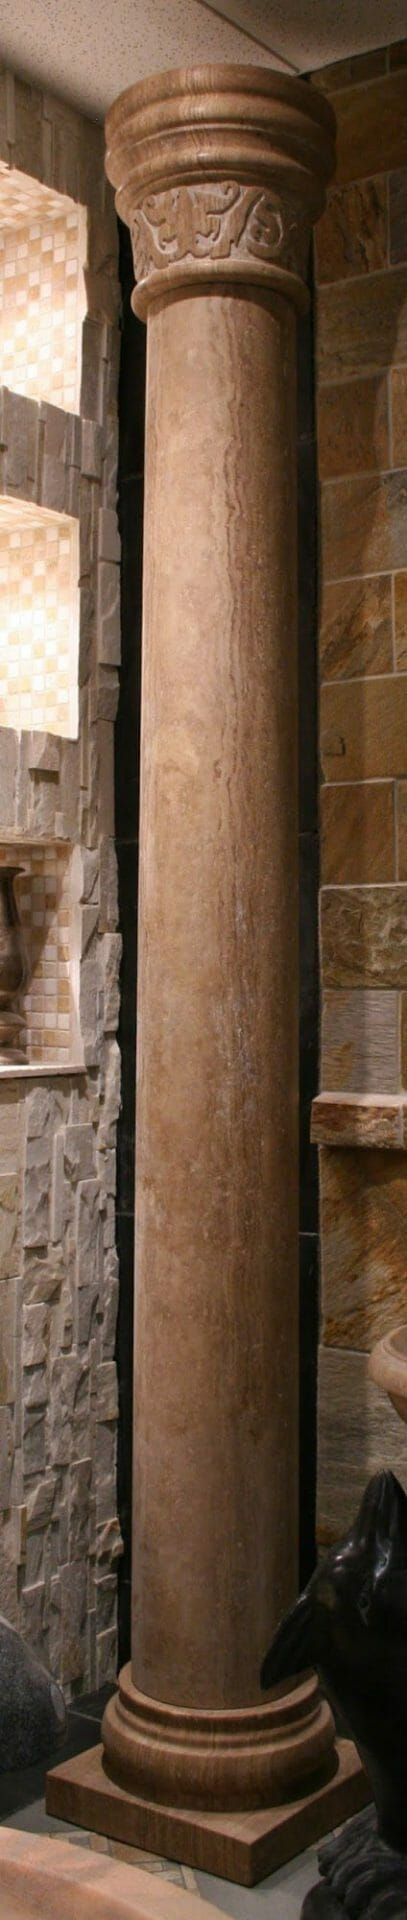 Noce Travertine Tuscan Column with Carved Cap Banding, 8-FT